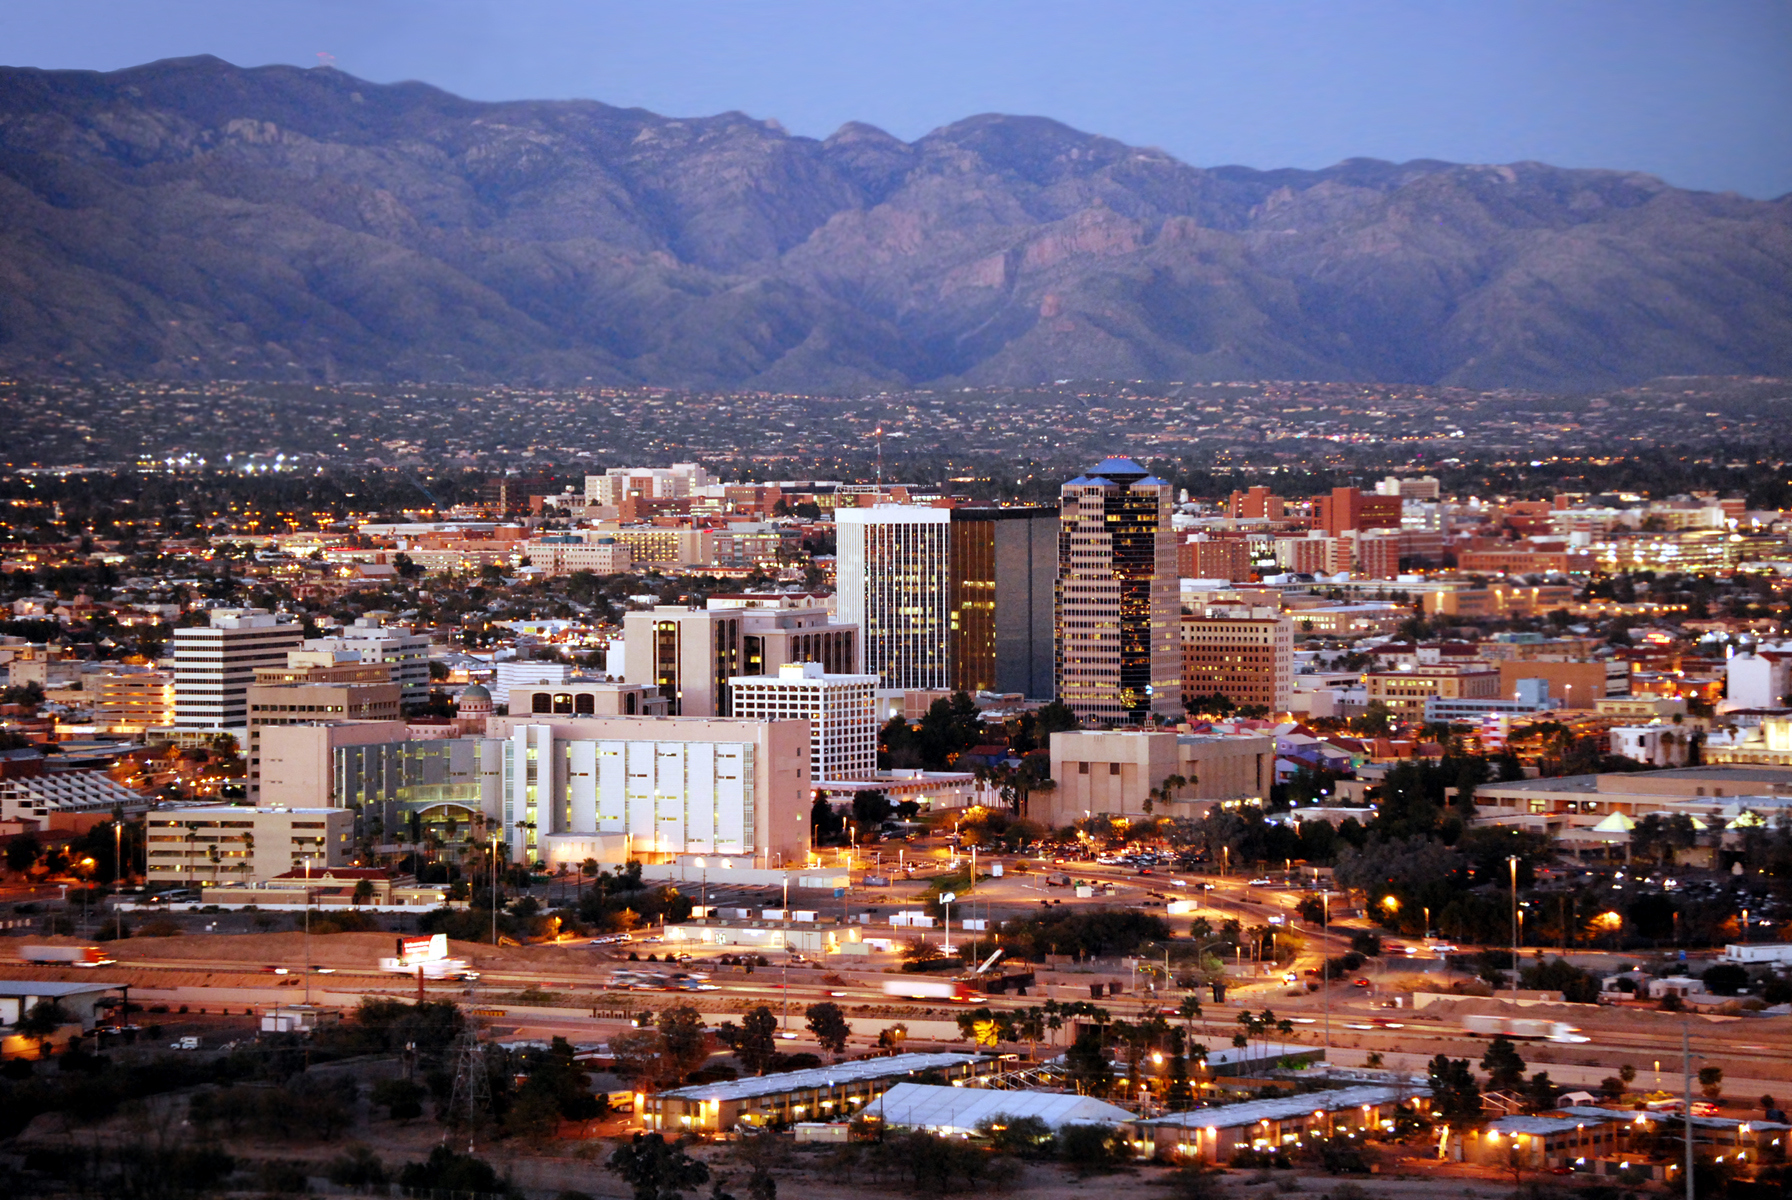 Tucson skyline after dark